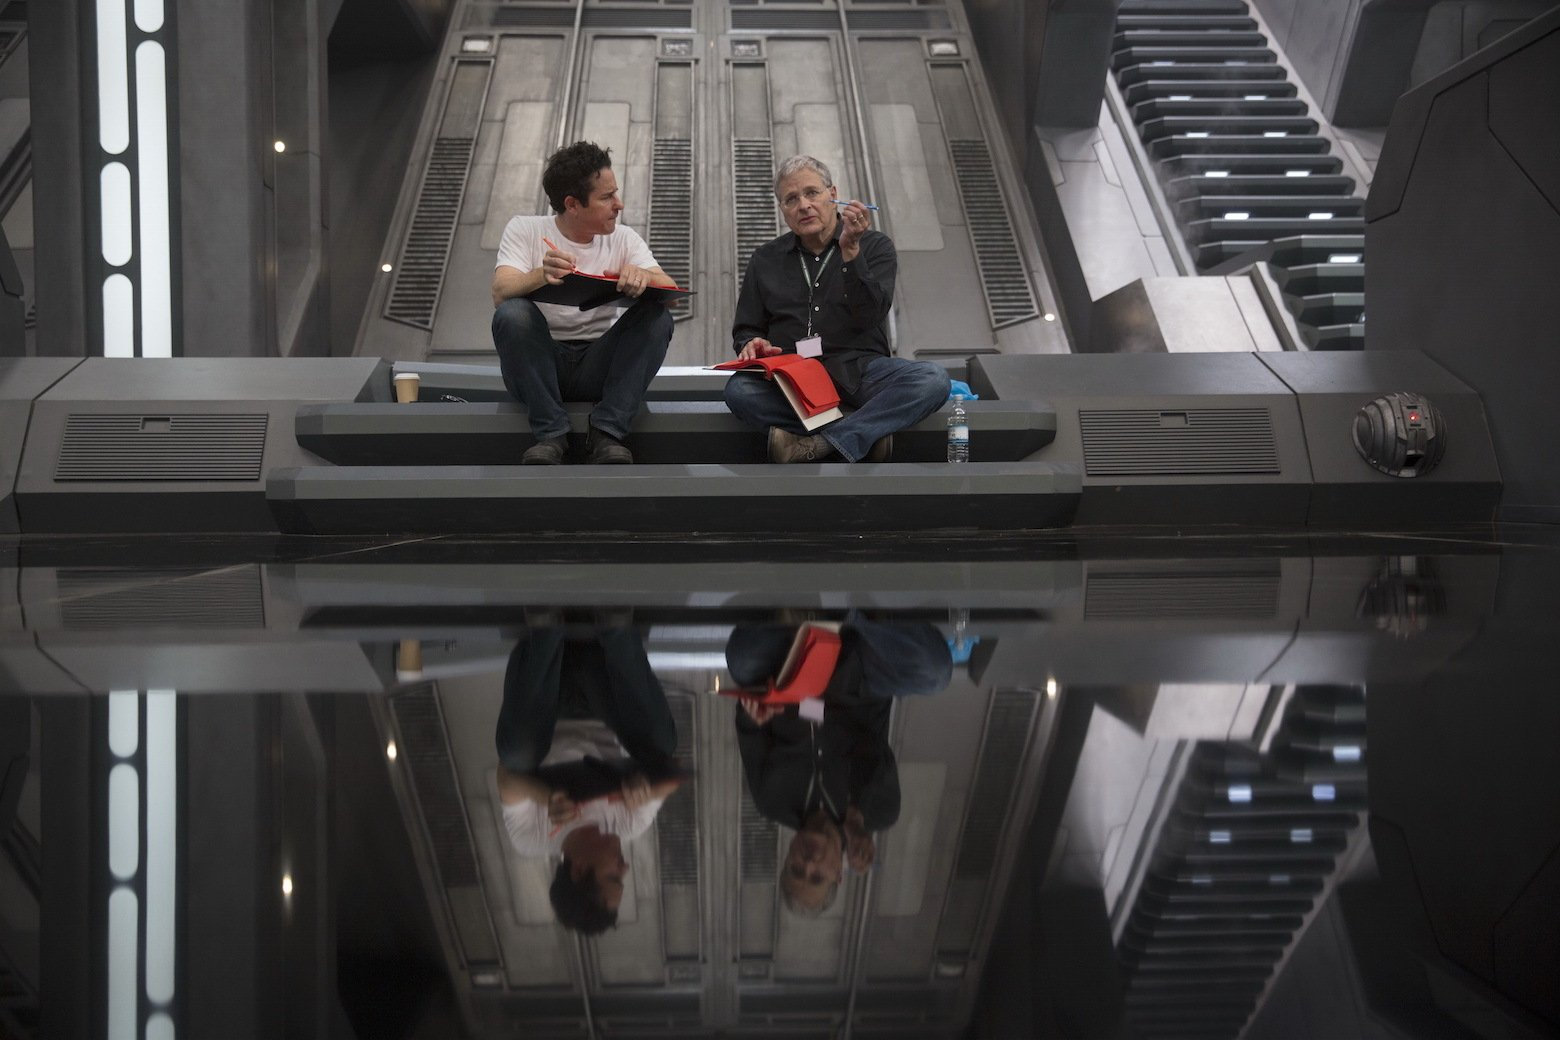 Star Wars VII The Force Awakens 11 - JJ Abrams and Lawrence Kasdan on set